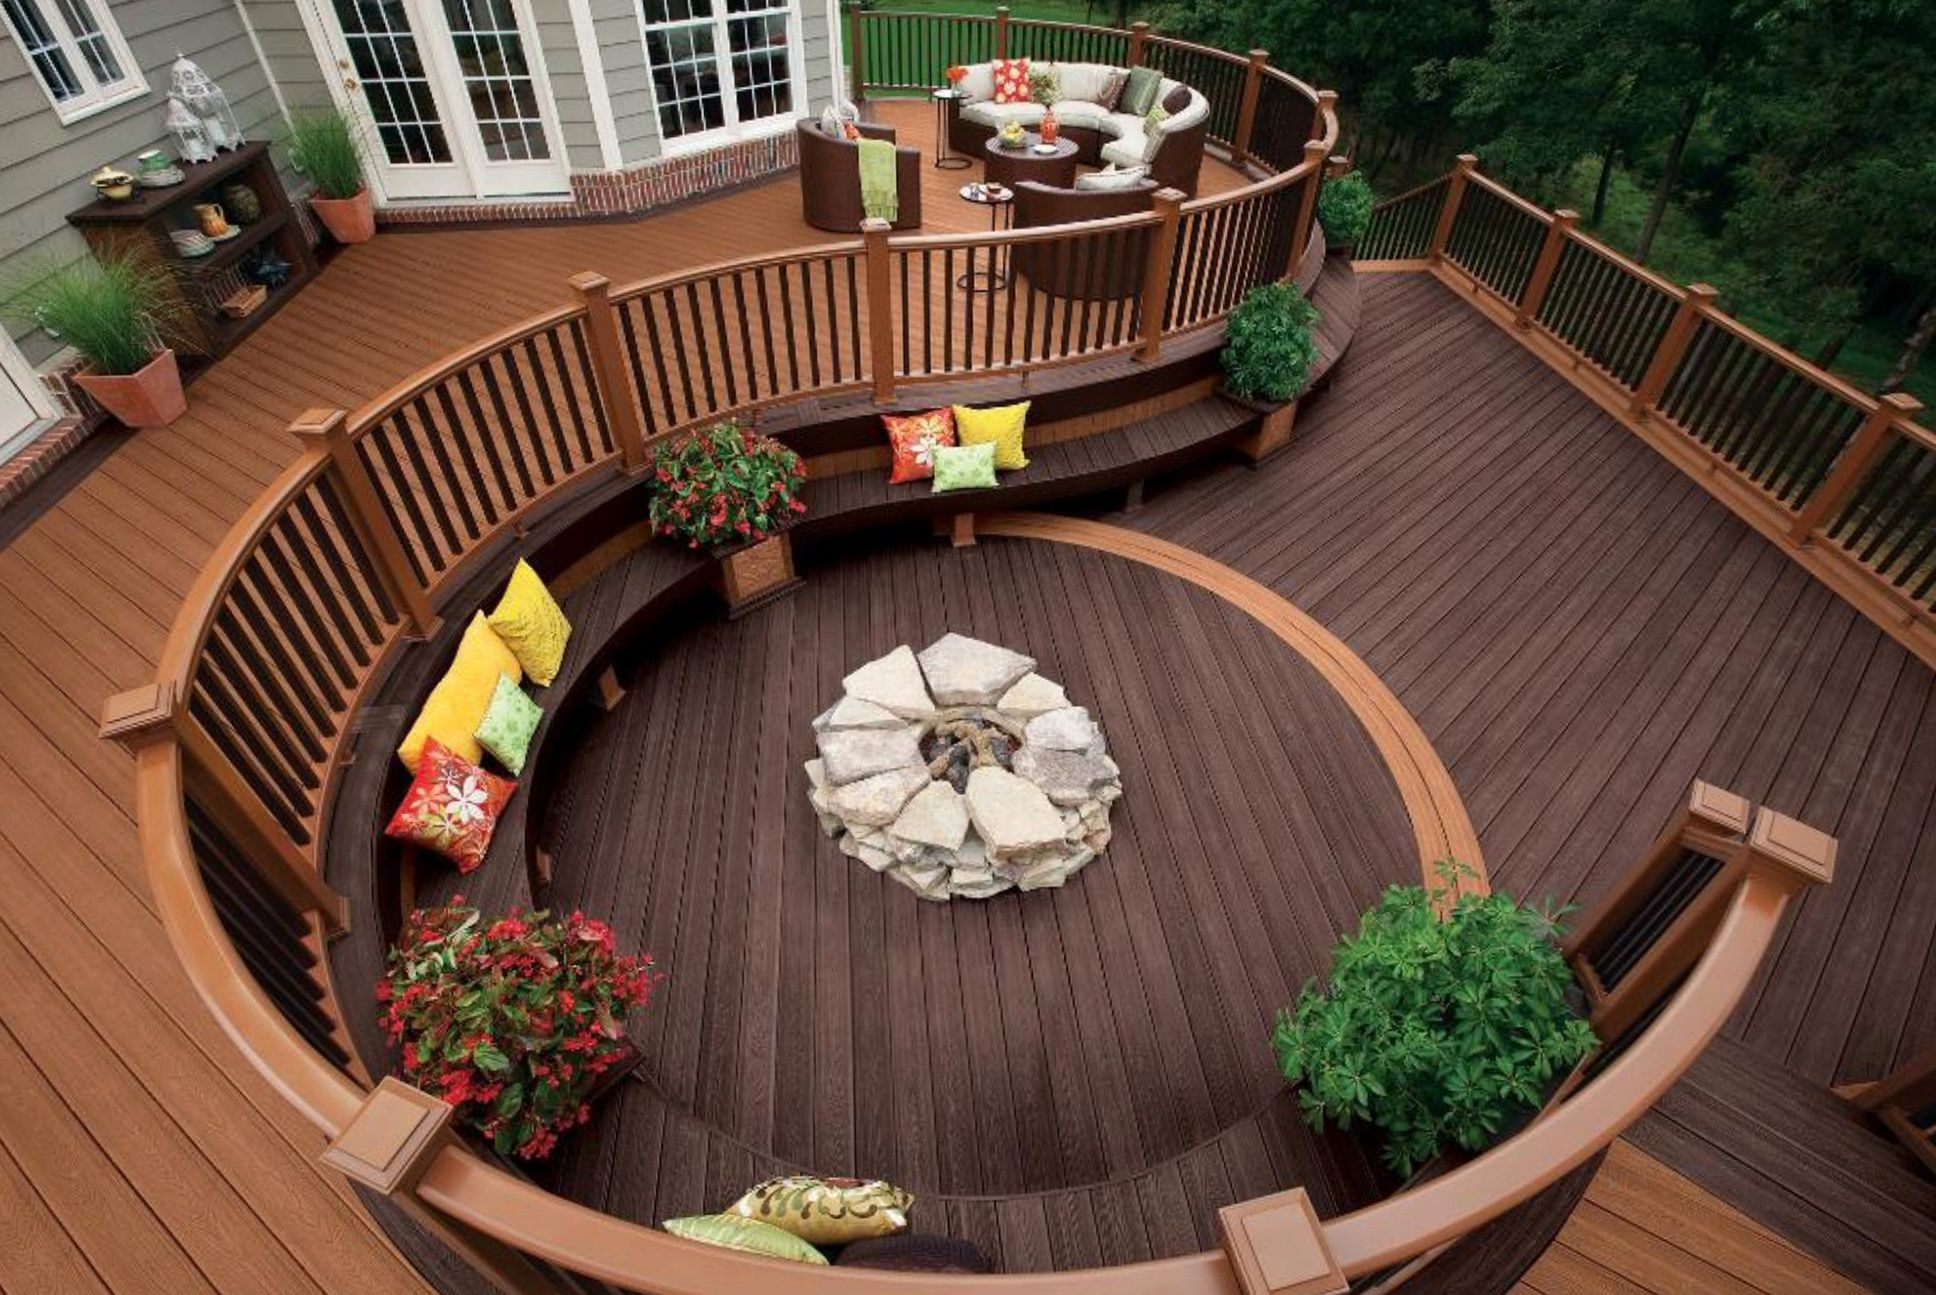 Multi Tiered Outdoor Patio with Wooden Deck Completed with Rustic Style Fire Pit Idea